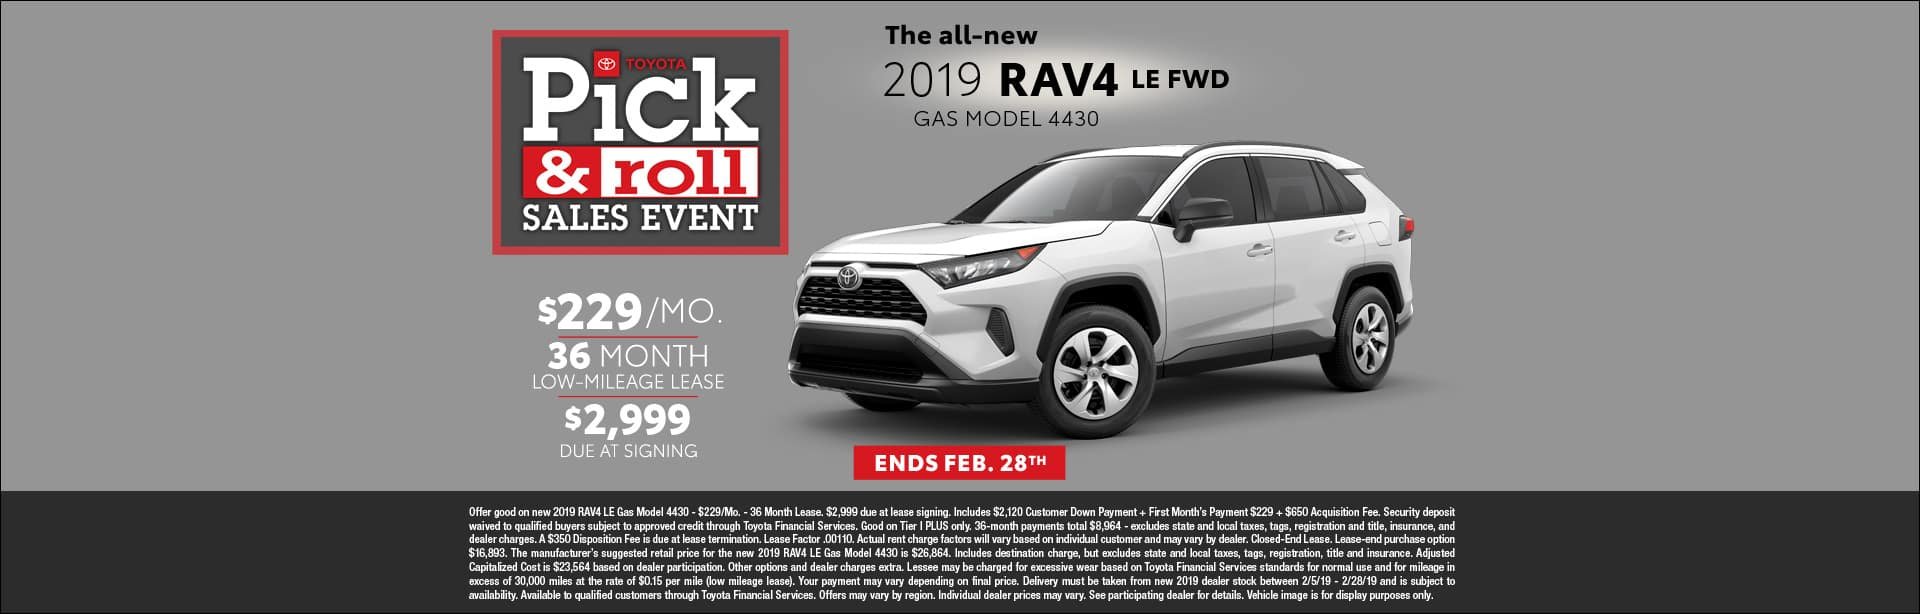 RAV4 LEASE CAIN TOYOTA NORTH CANTON OHIO